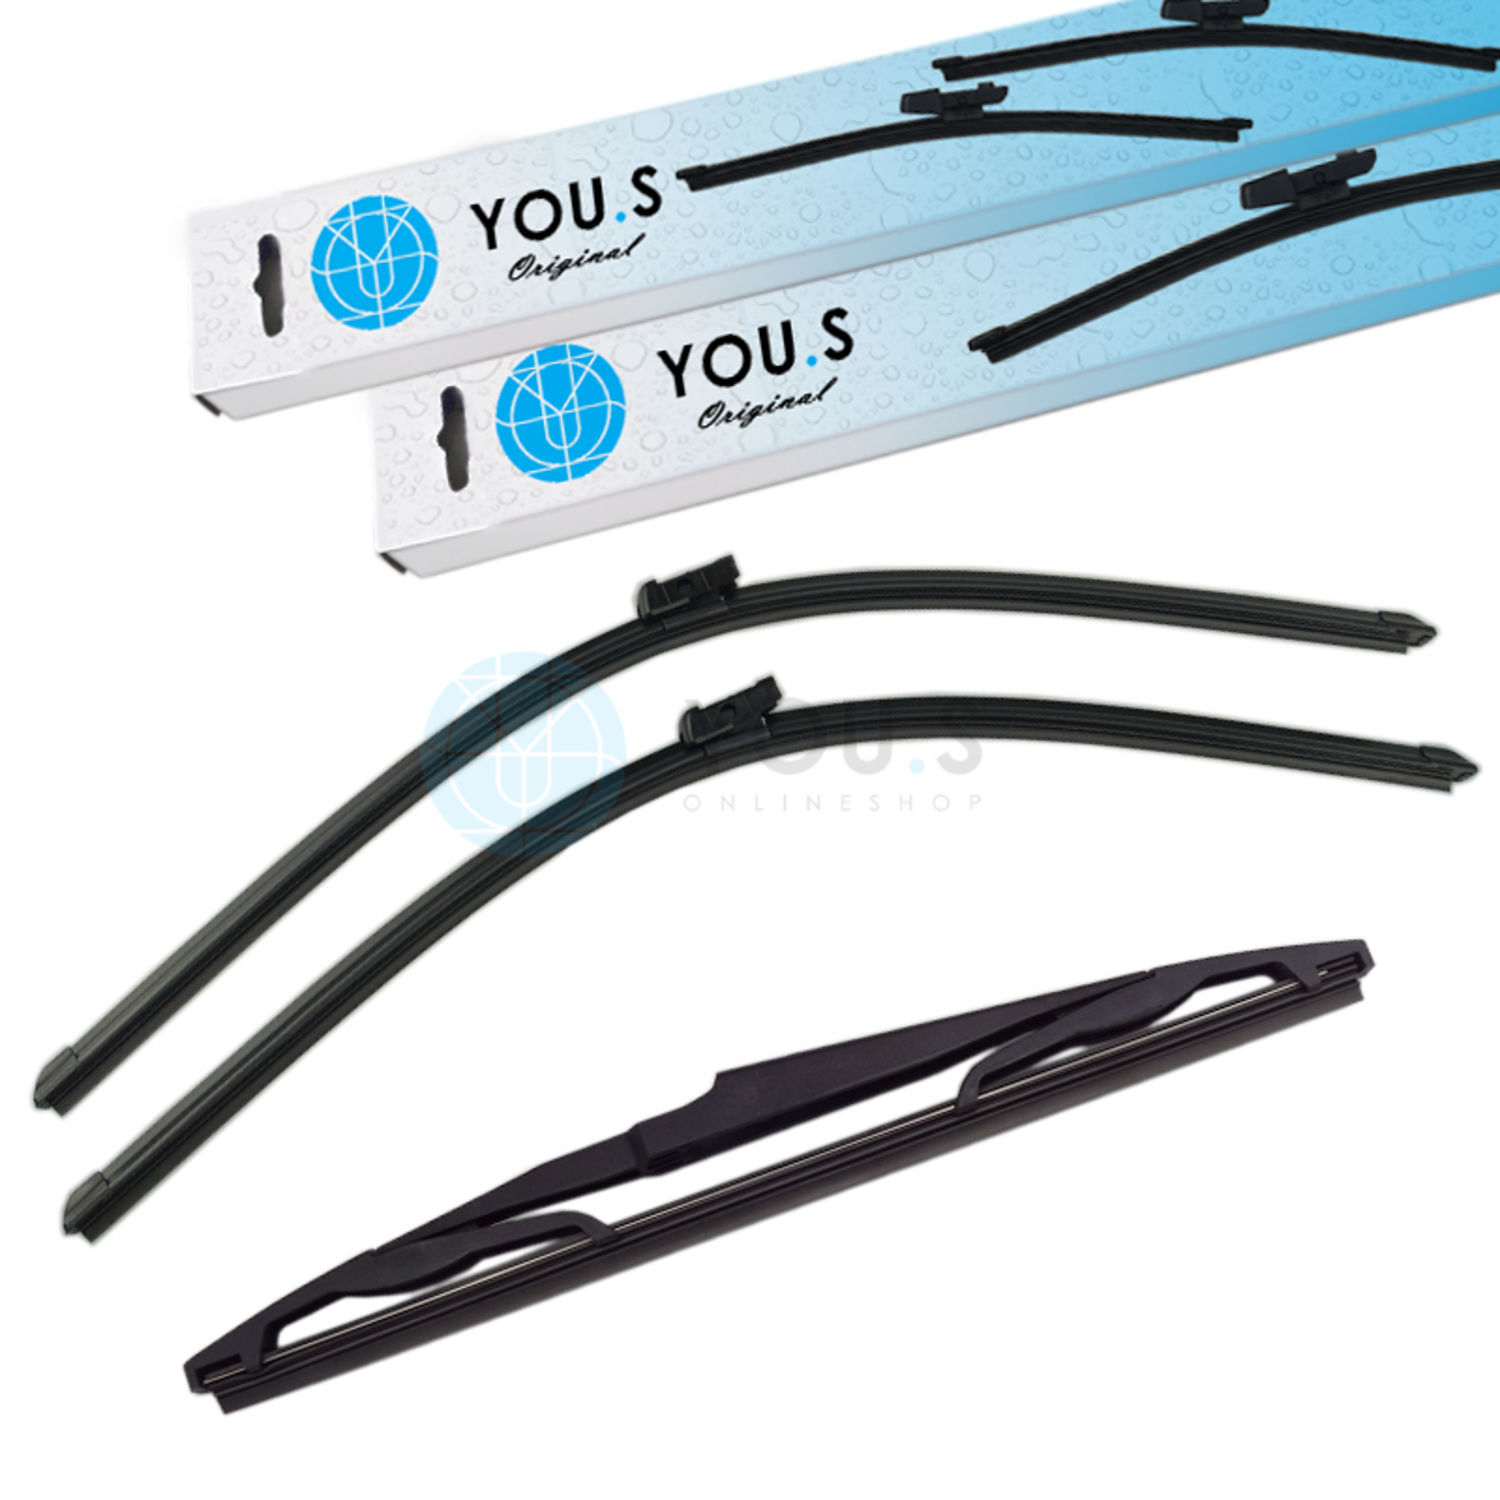 Details about You.S Original Windshield Wiper Set Front+Rear For Opel Astra J GTC New